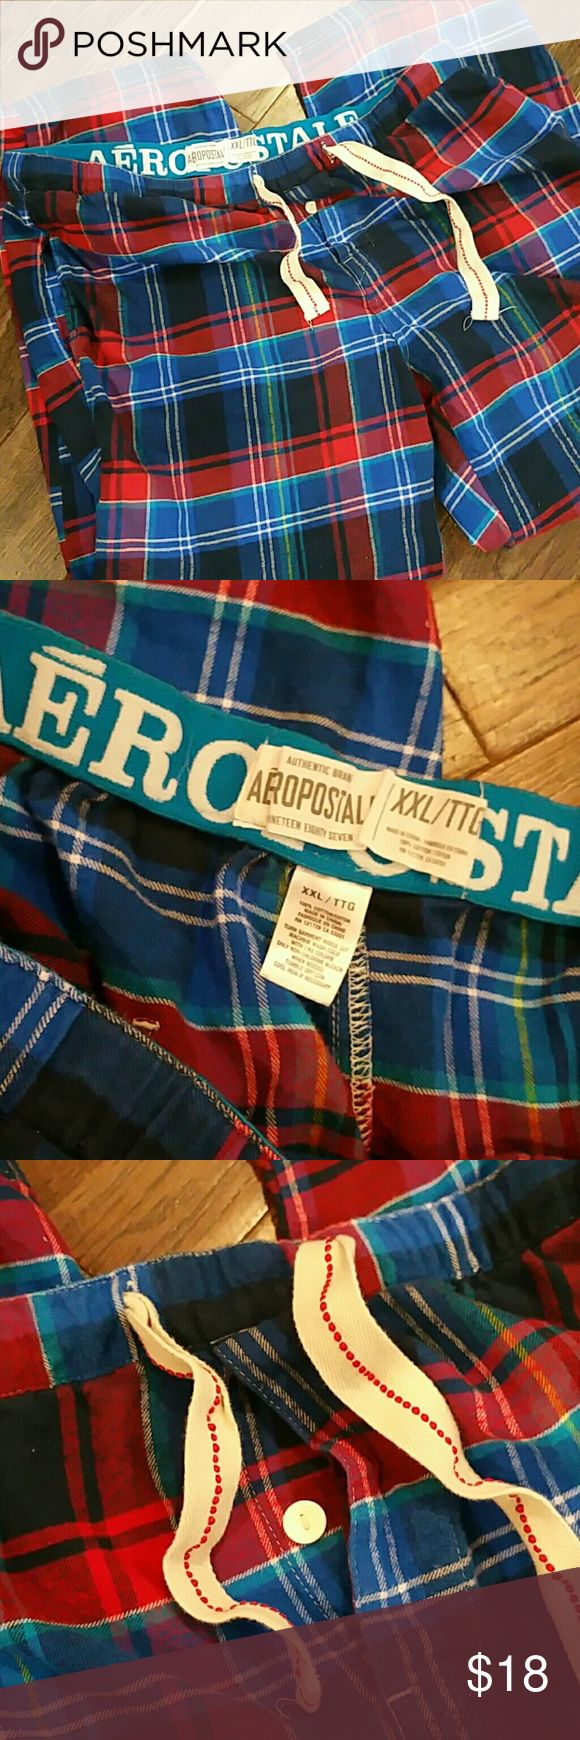 AEROPOSTALE MEN'S PANTS A real nice never worn but washed pair of pants for sleeping or lounging in blue and red soft flannel drawstring tie 1 button fly. Aeropostale Pants Sweatpants & Joggers